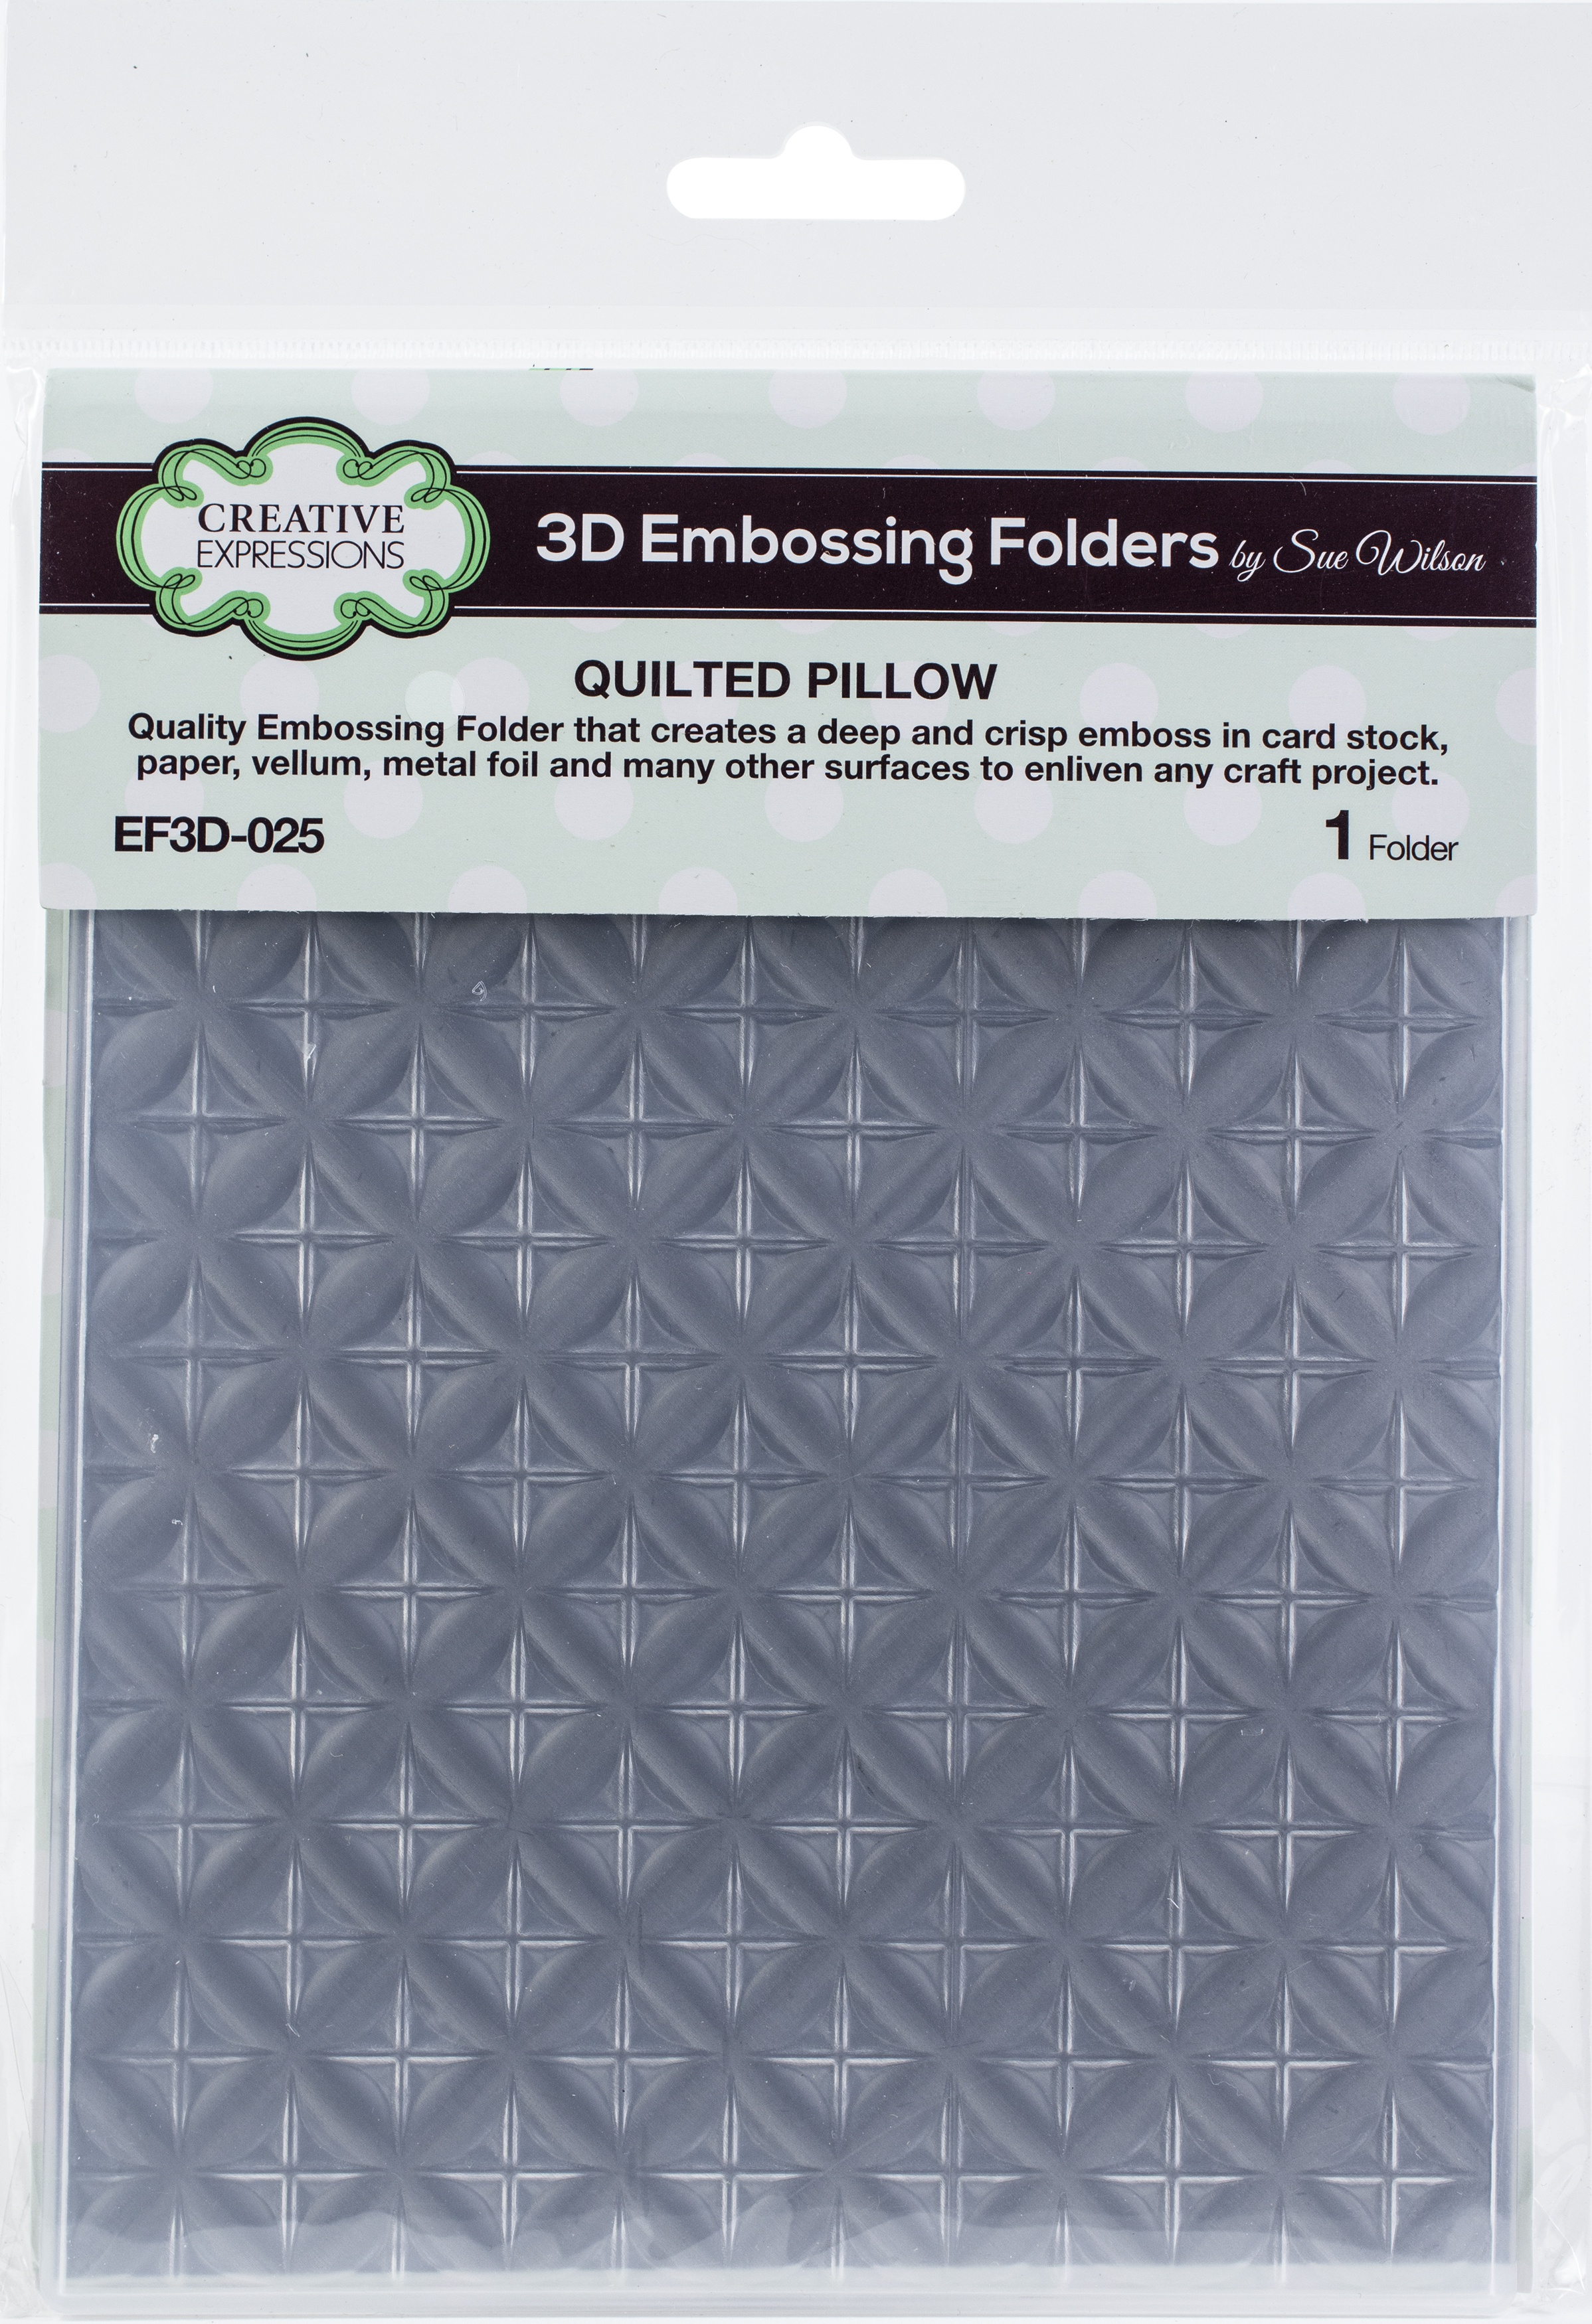 Creative Expressions 3D Embossing Folder 5.75X7.5-Quilted Pillow